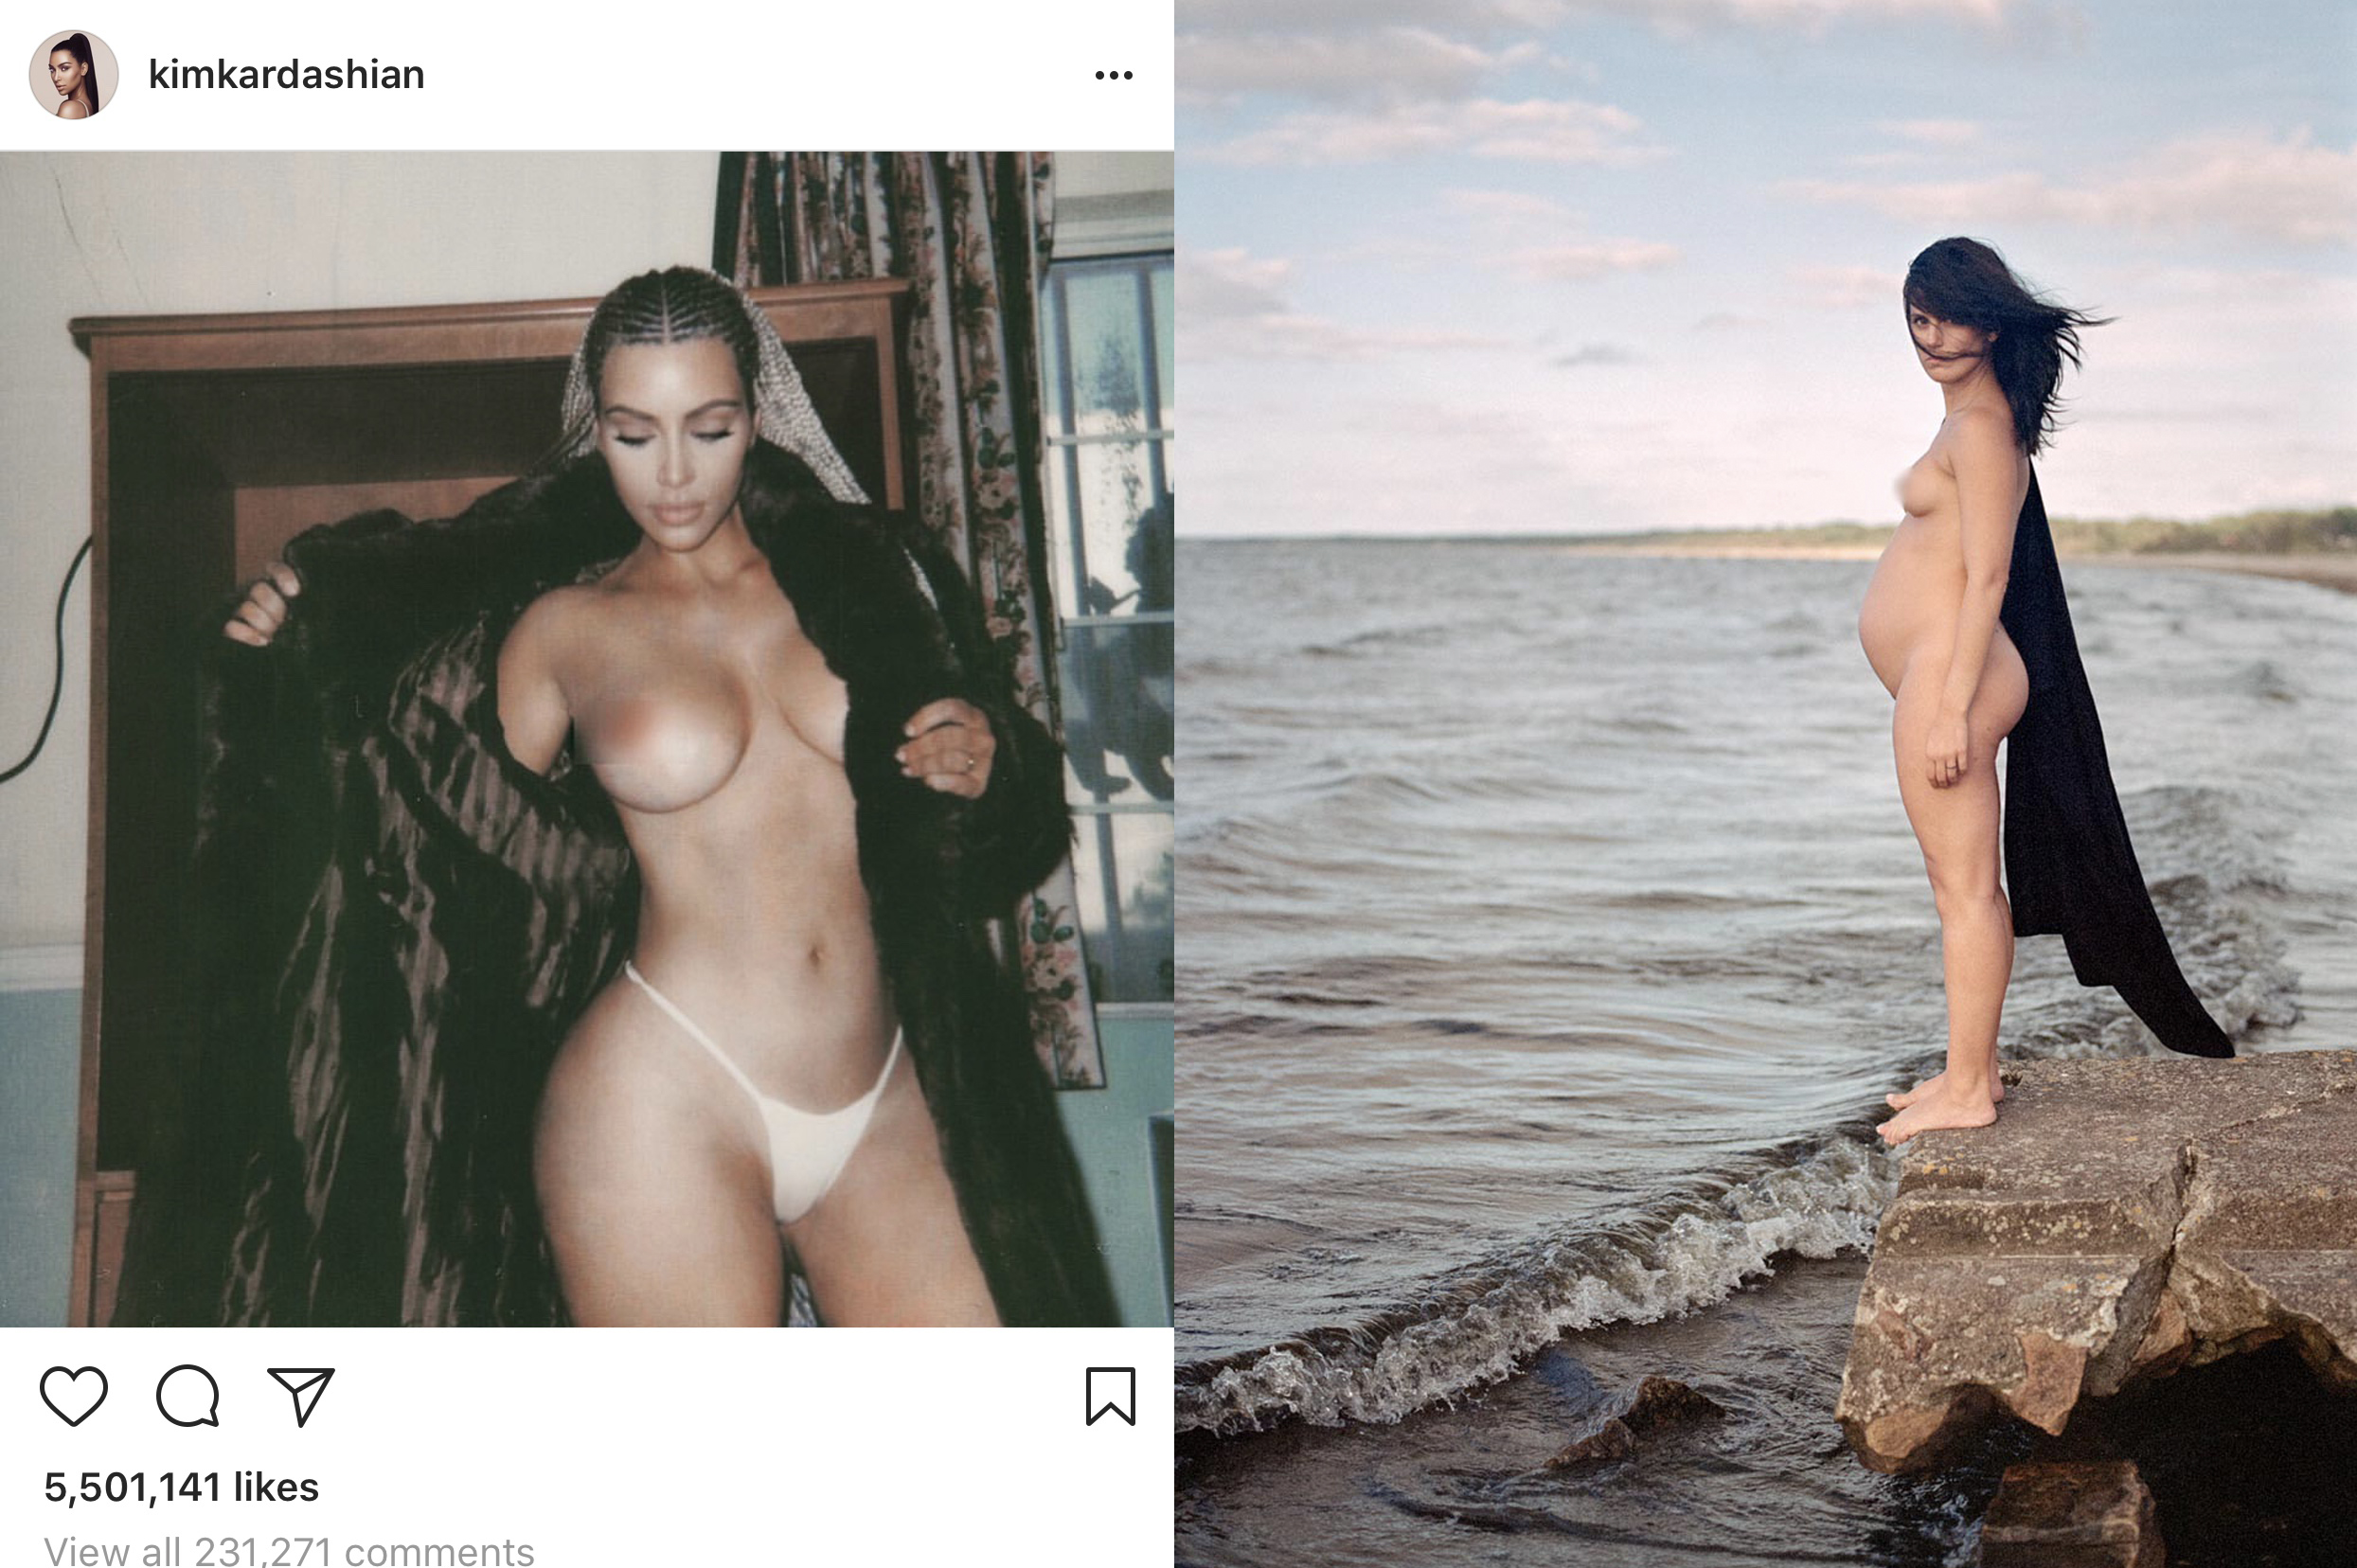 The image on the left is from Kim Kardashian's Instagram account and allowed to remain, the photo on the right caused Adey's account to be removed.